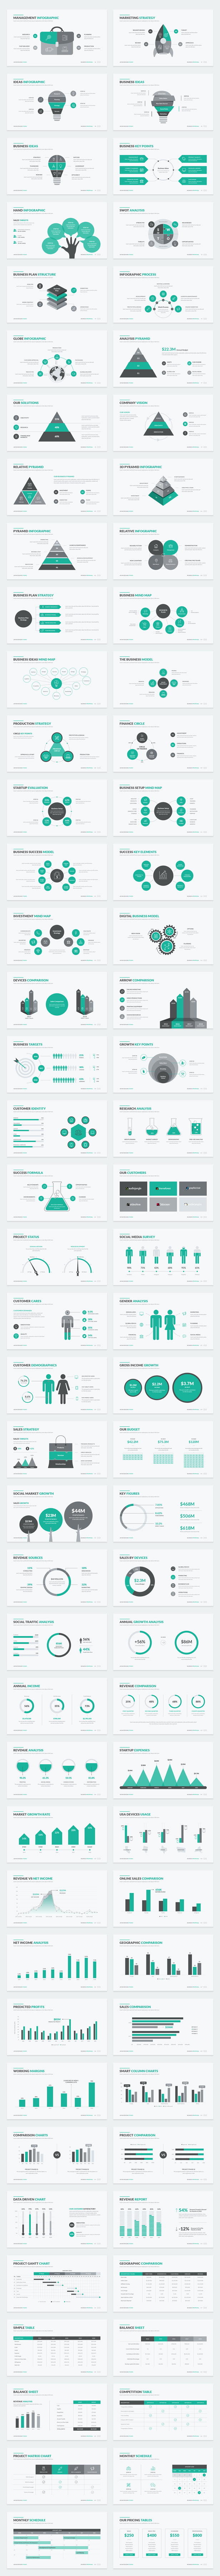 Business Proposal PowerPoint Template - 4